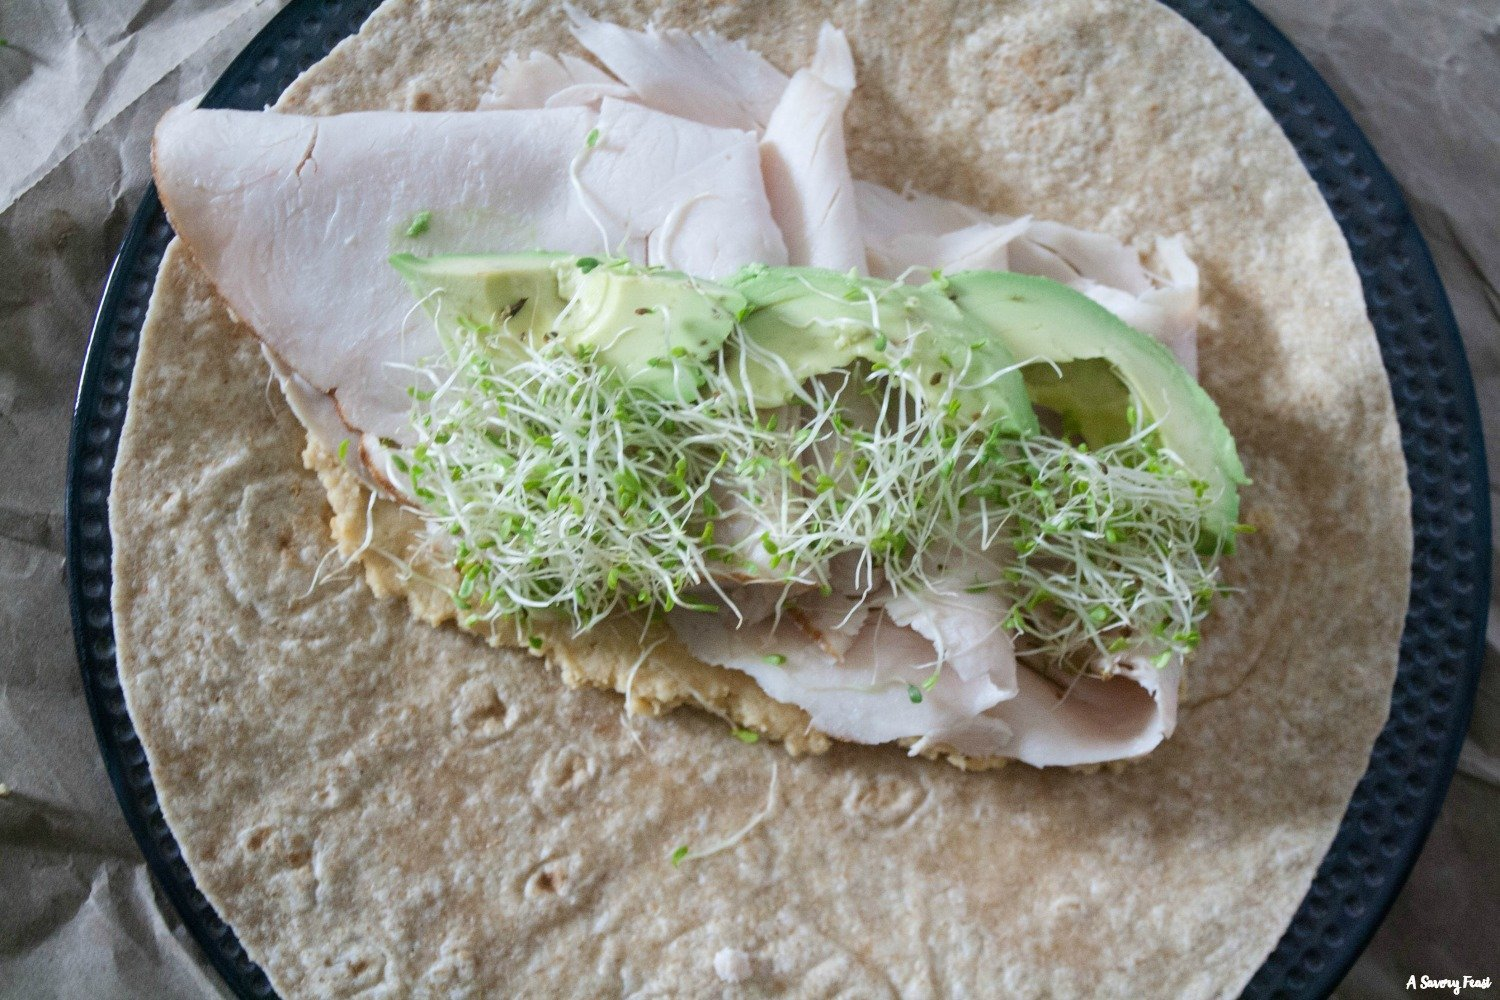 Easy lunch idea: Turkey & Hummus Wraps